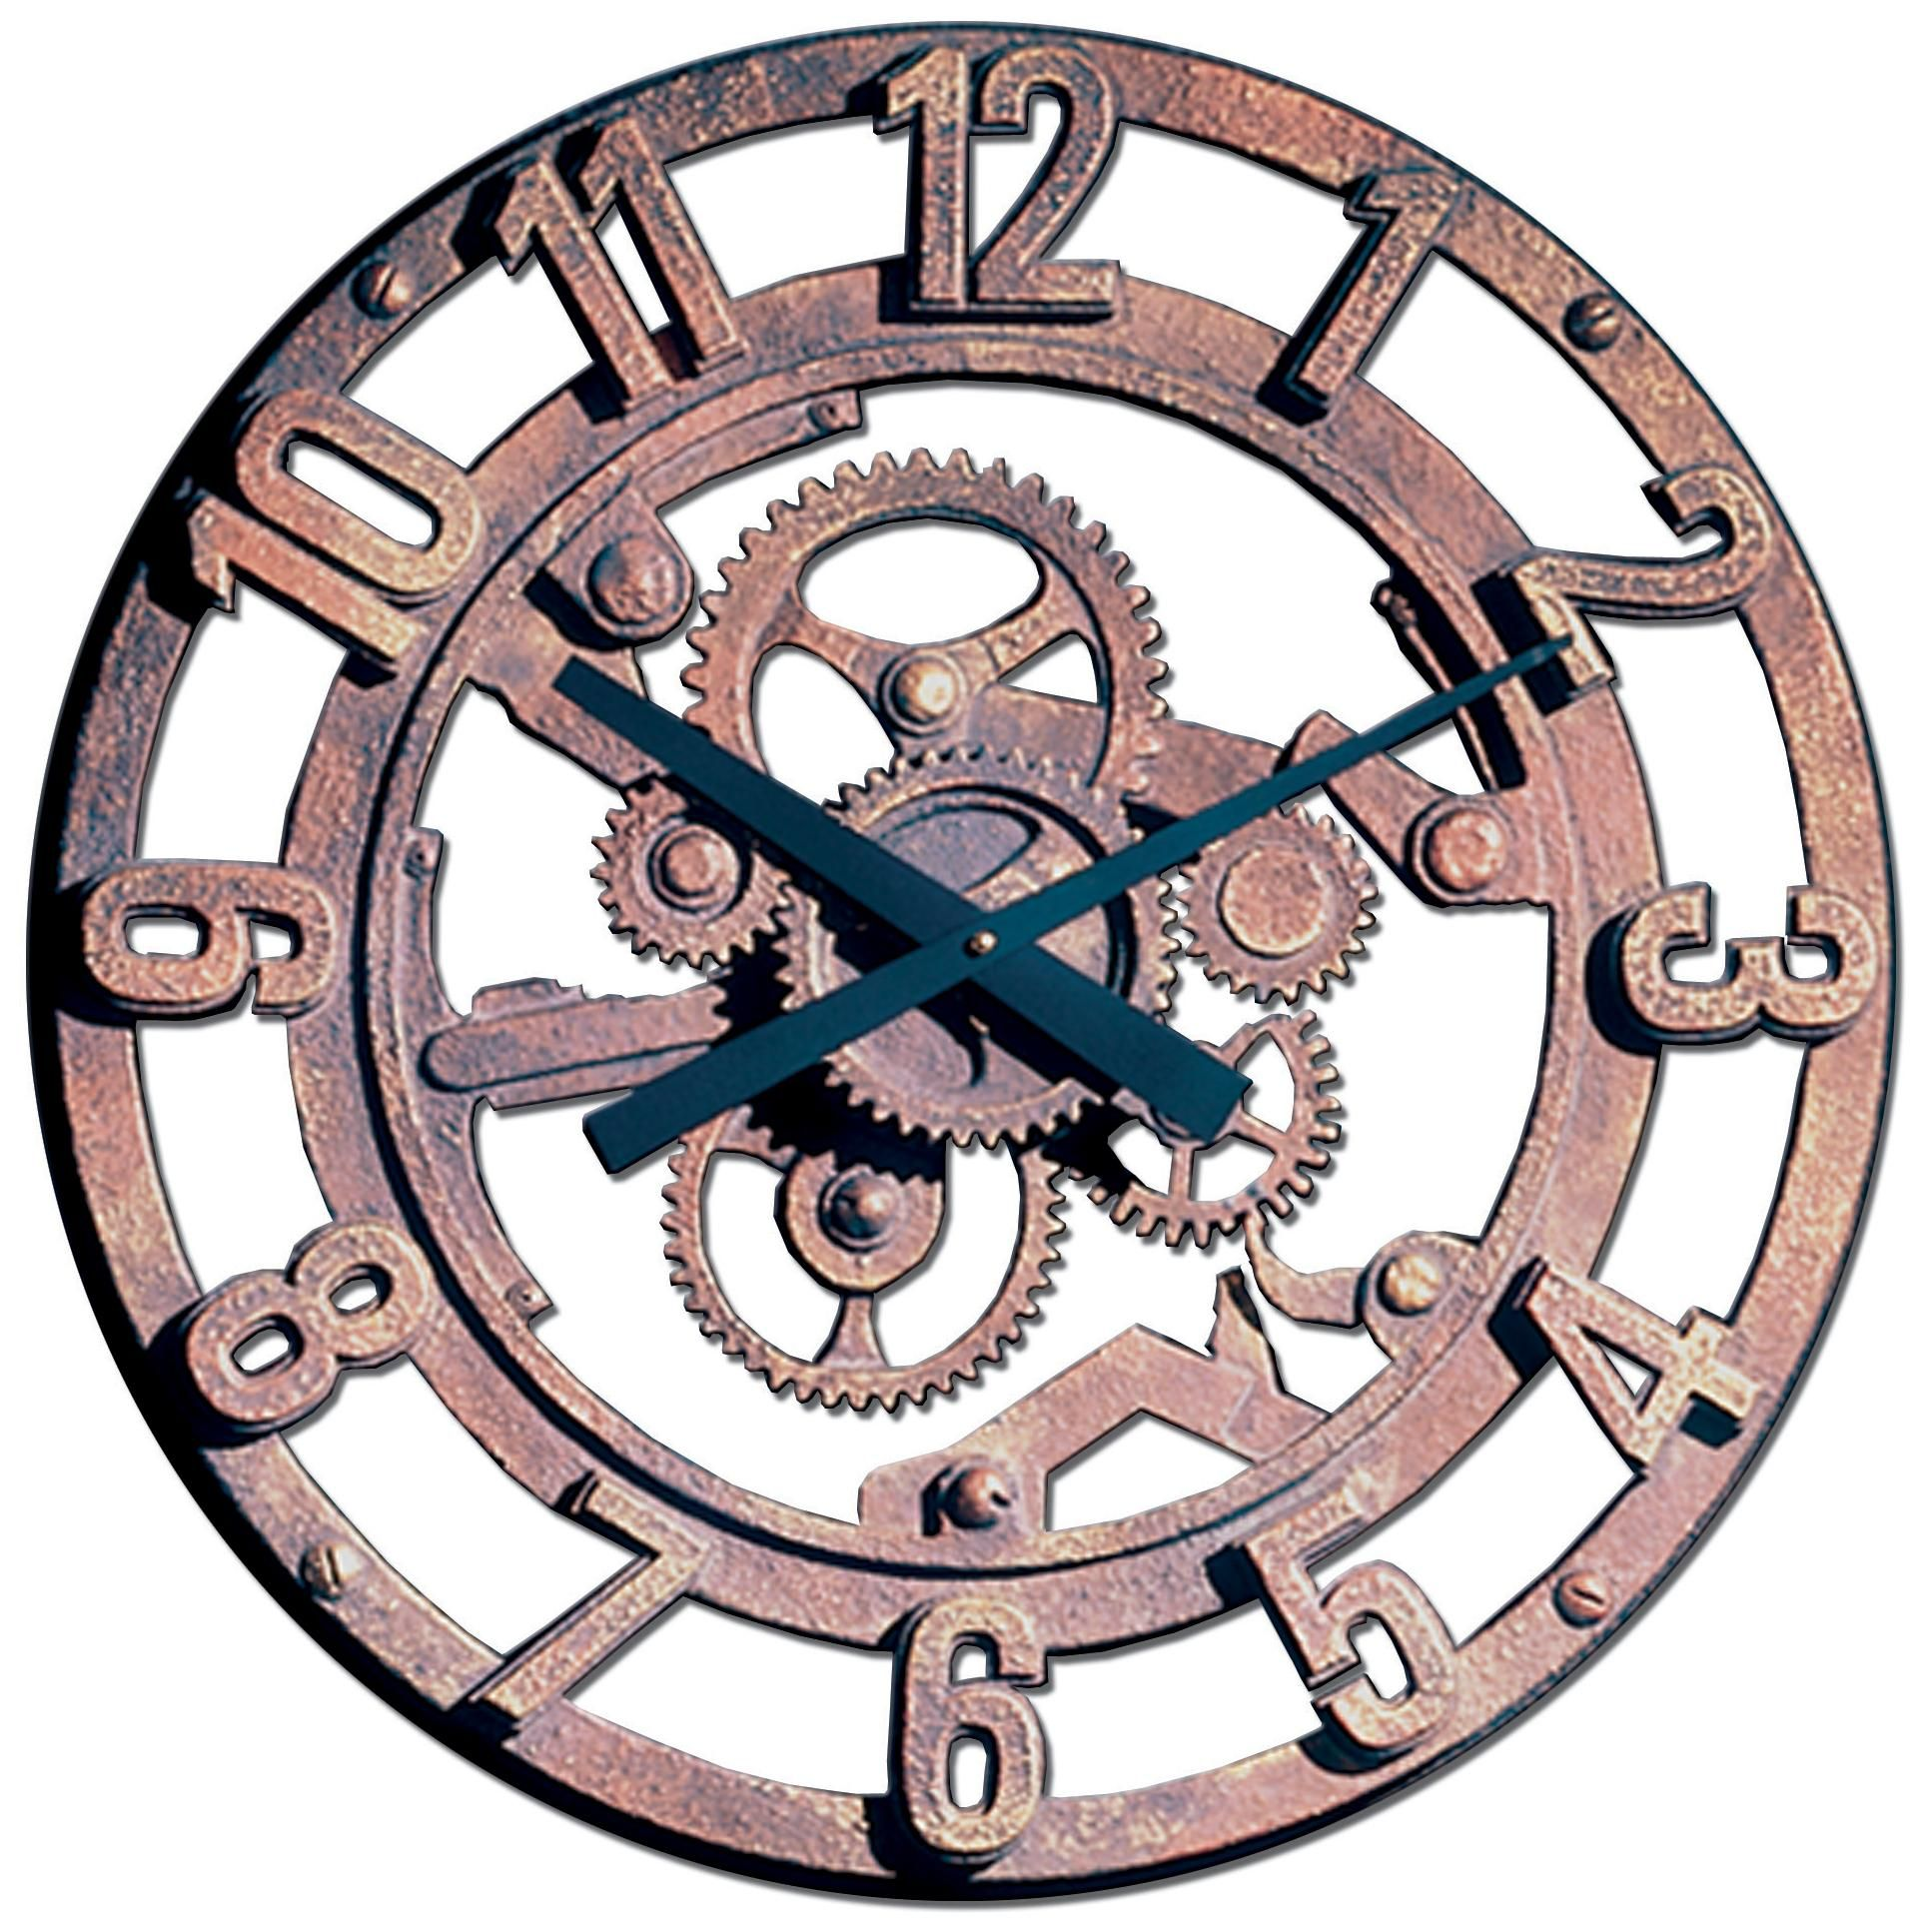 Gears of time 22 wide battery powered wall clock steampunkery gears of time 22 wide battery powered wall clock amipublicfo Gallery